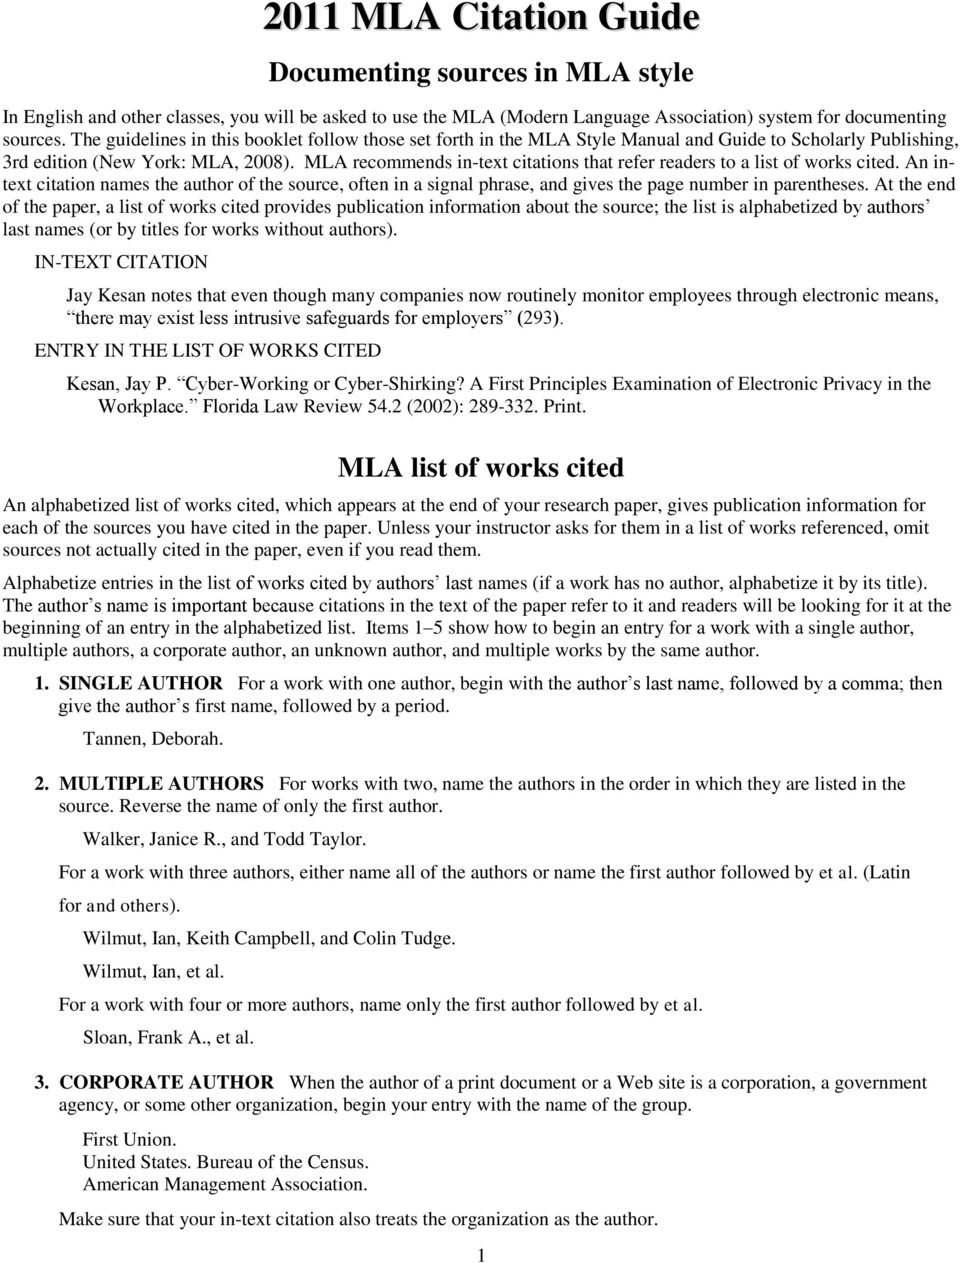 documenting sources in mla style mla list of works cited pdf